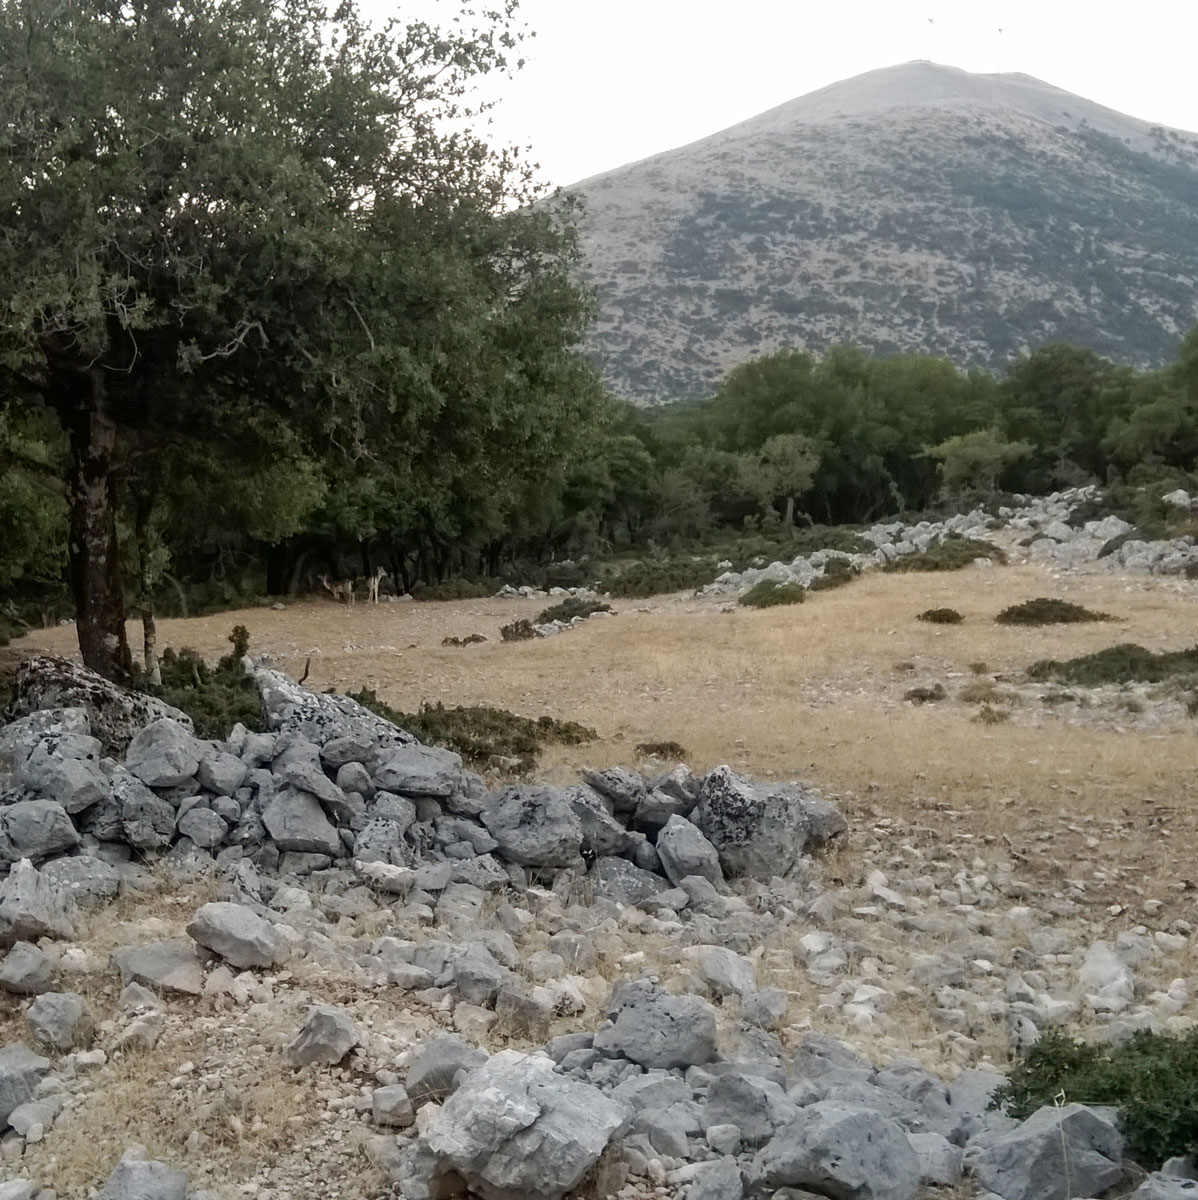 Kefalonia Walking Trails - Kefalonia Hiking - Kefalonia Trekking - Day Tours Kefalonia - Trail Running in Kefalonia -  Walking Trails Sami Kefalonia -Kefalonia Trekking - Kefalonia Hiking Tours